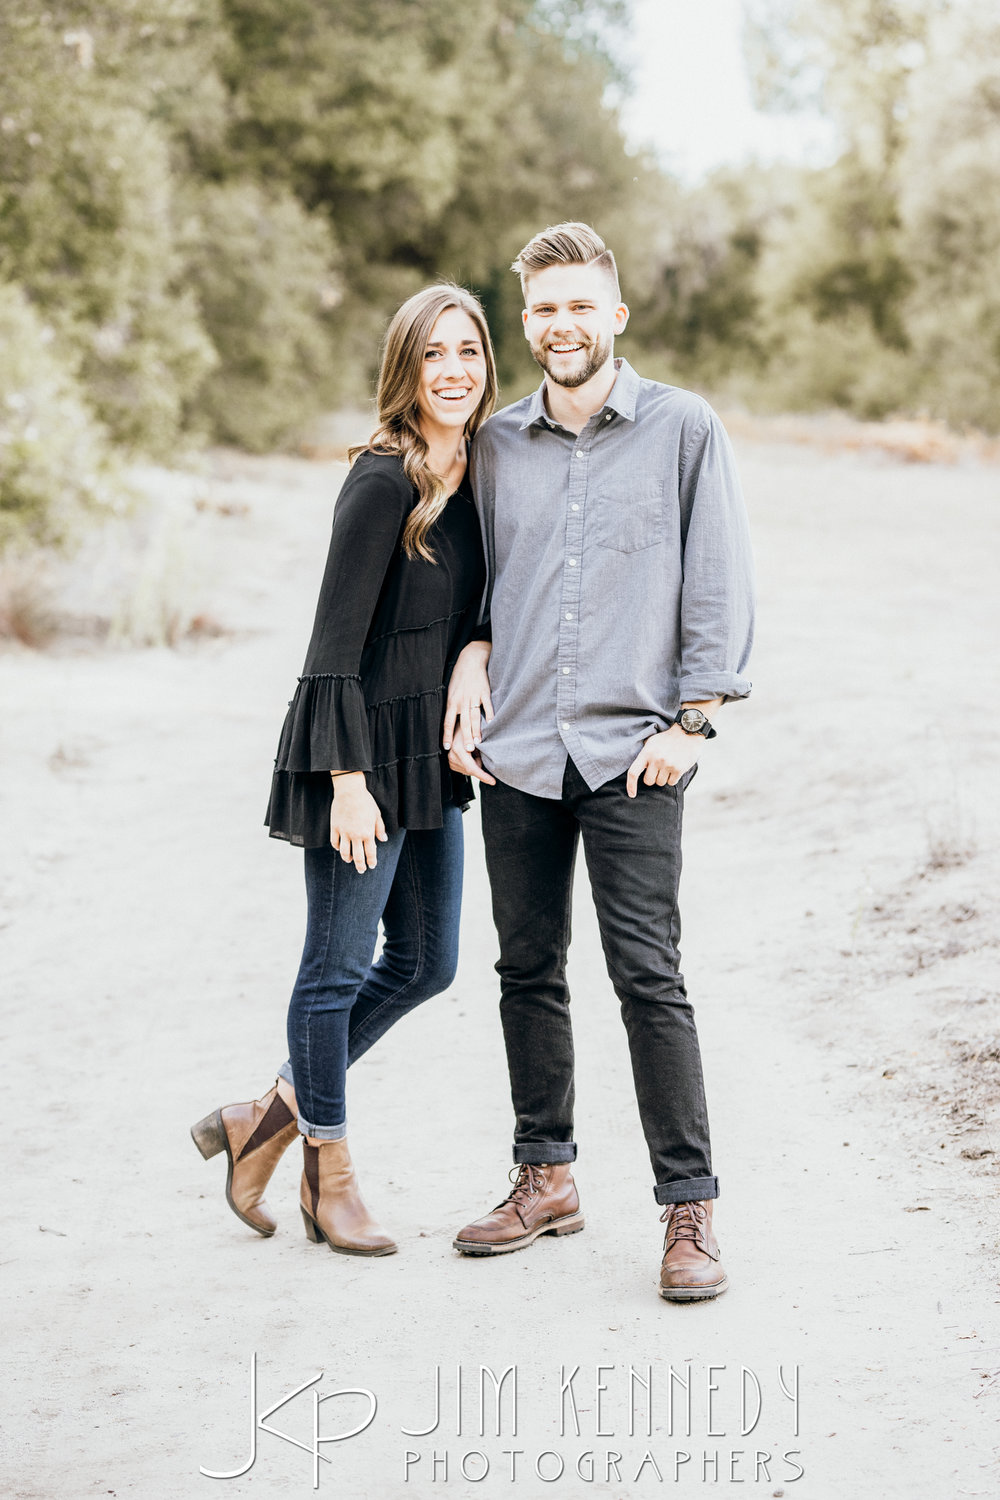 thomas-f-riley-wilderness-park-engagement-session-Leah-tyler_0008.JPG